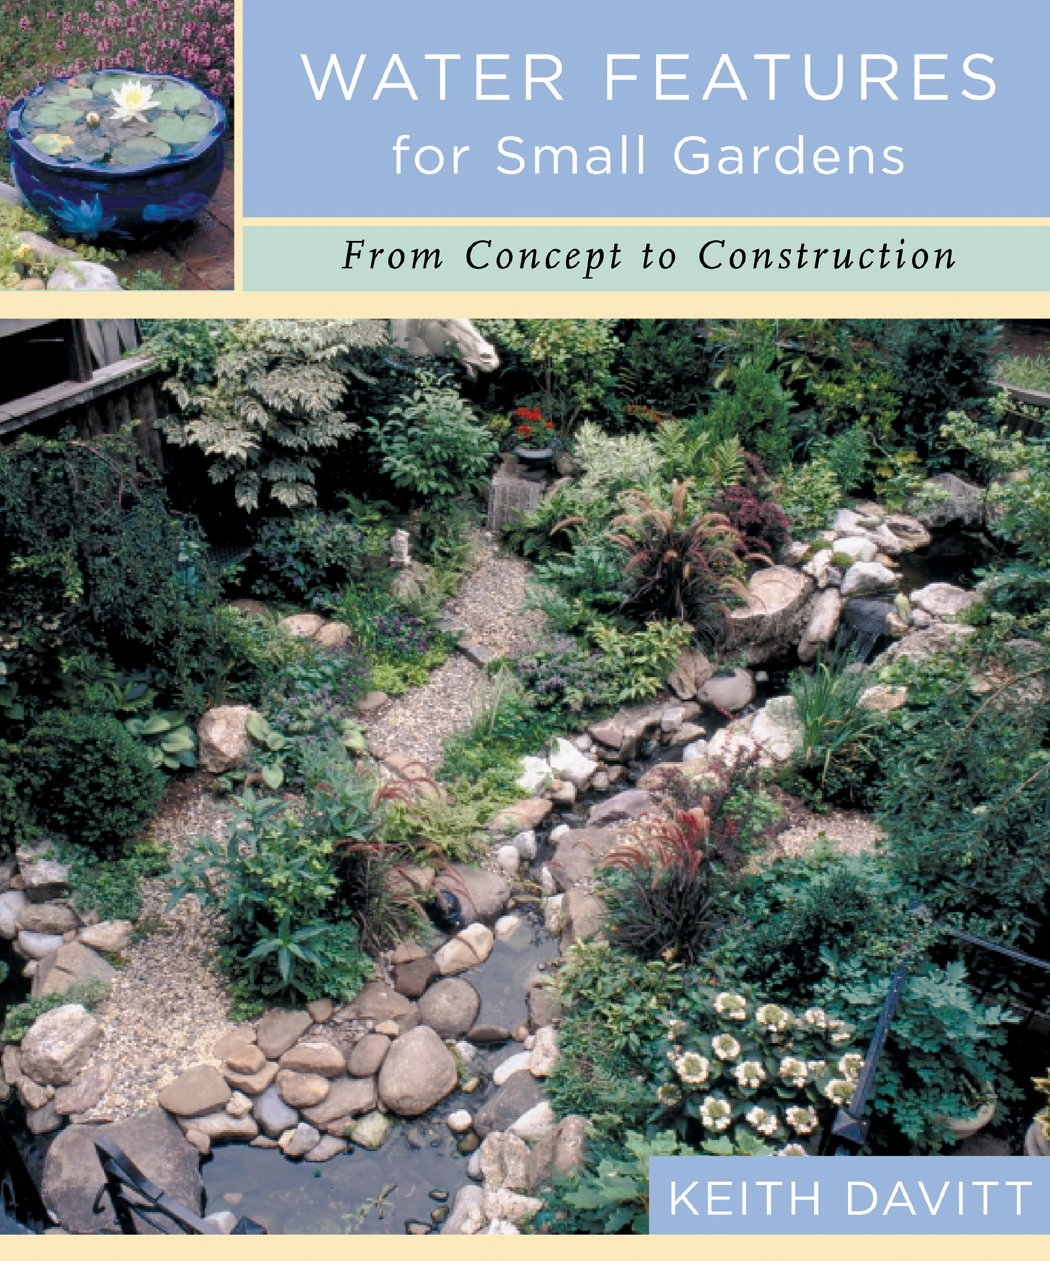 Charmant Water Features For Small Gardens: From Concept To Construction: Keith  Davitt: 0008819259695: Amazon.com: Books